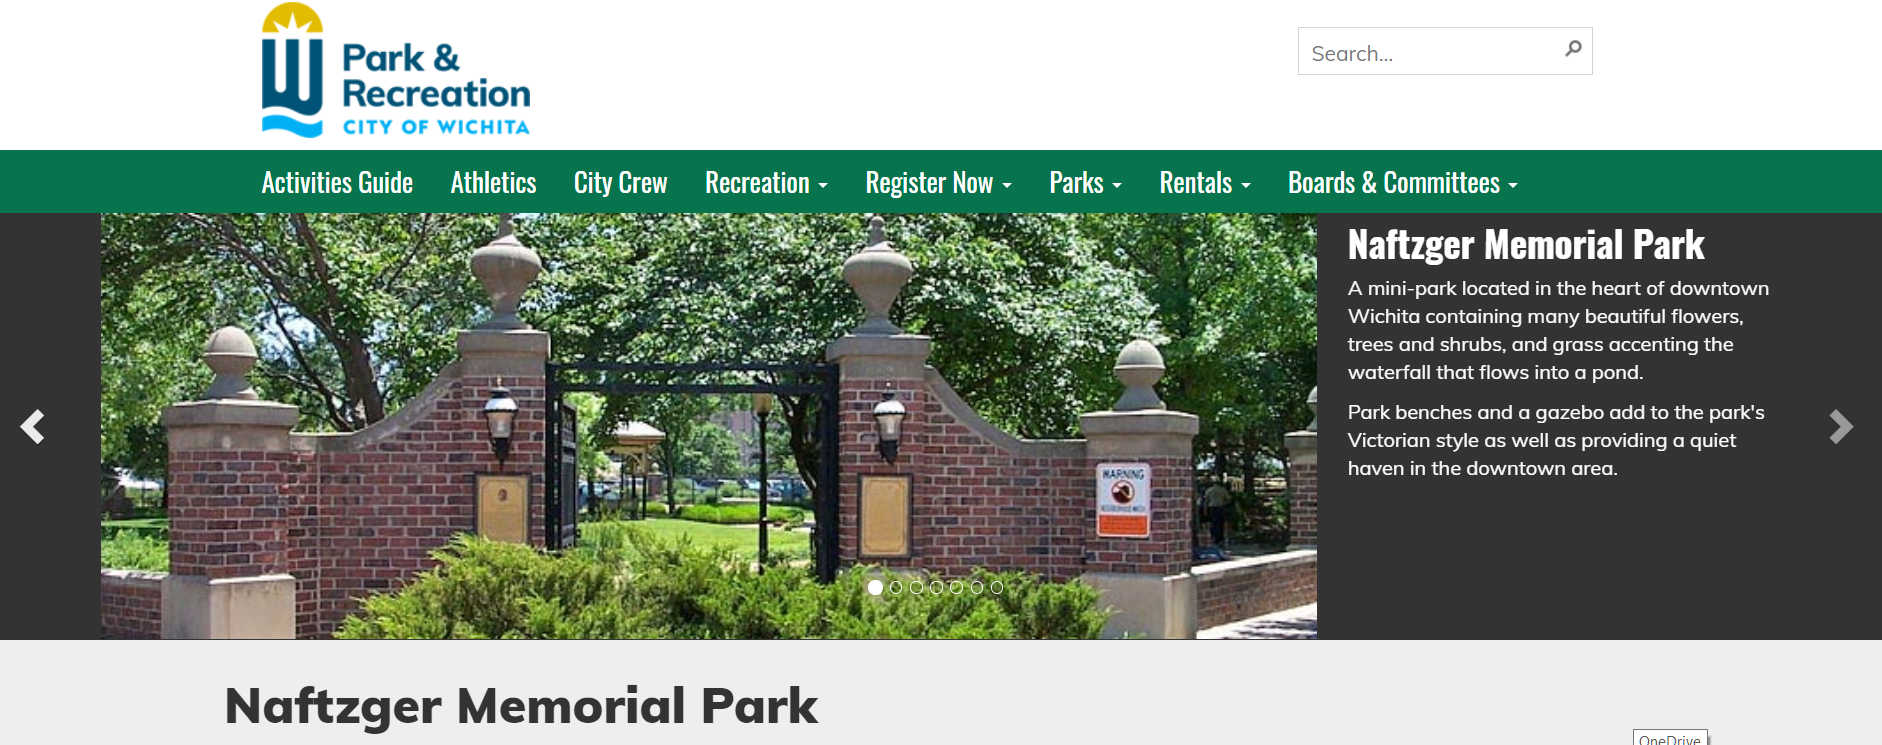 Naftzger Park on the web: Do we care?